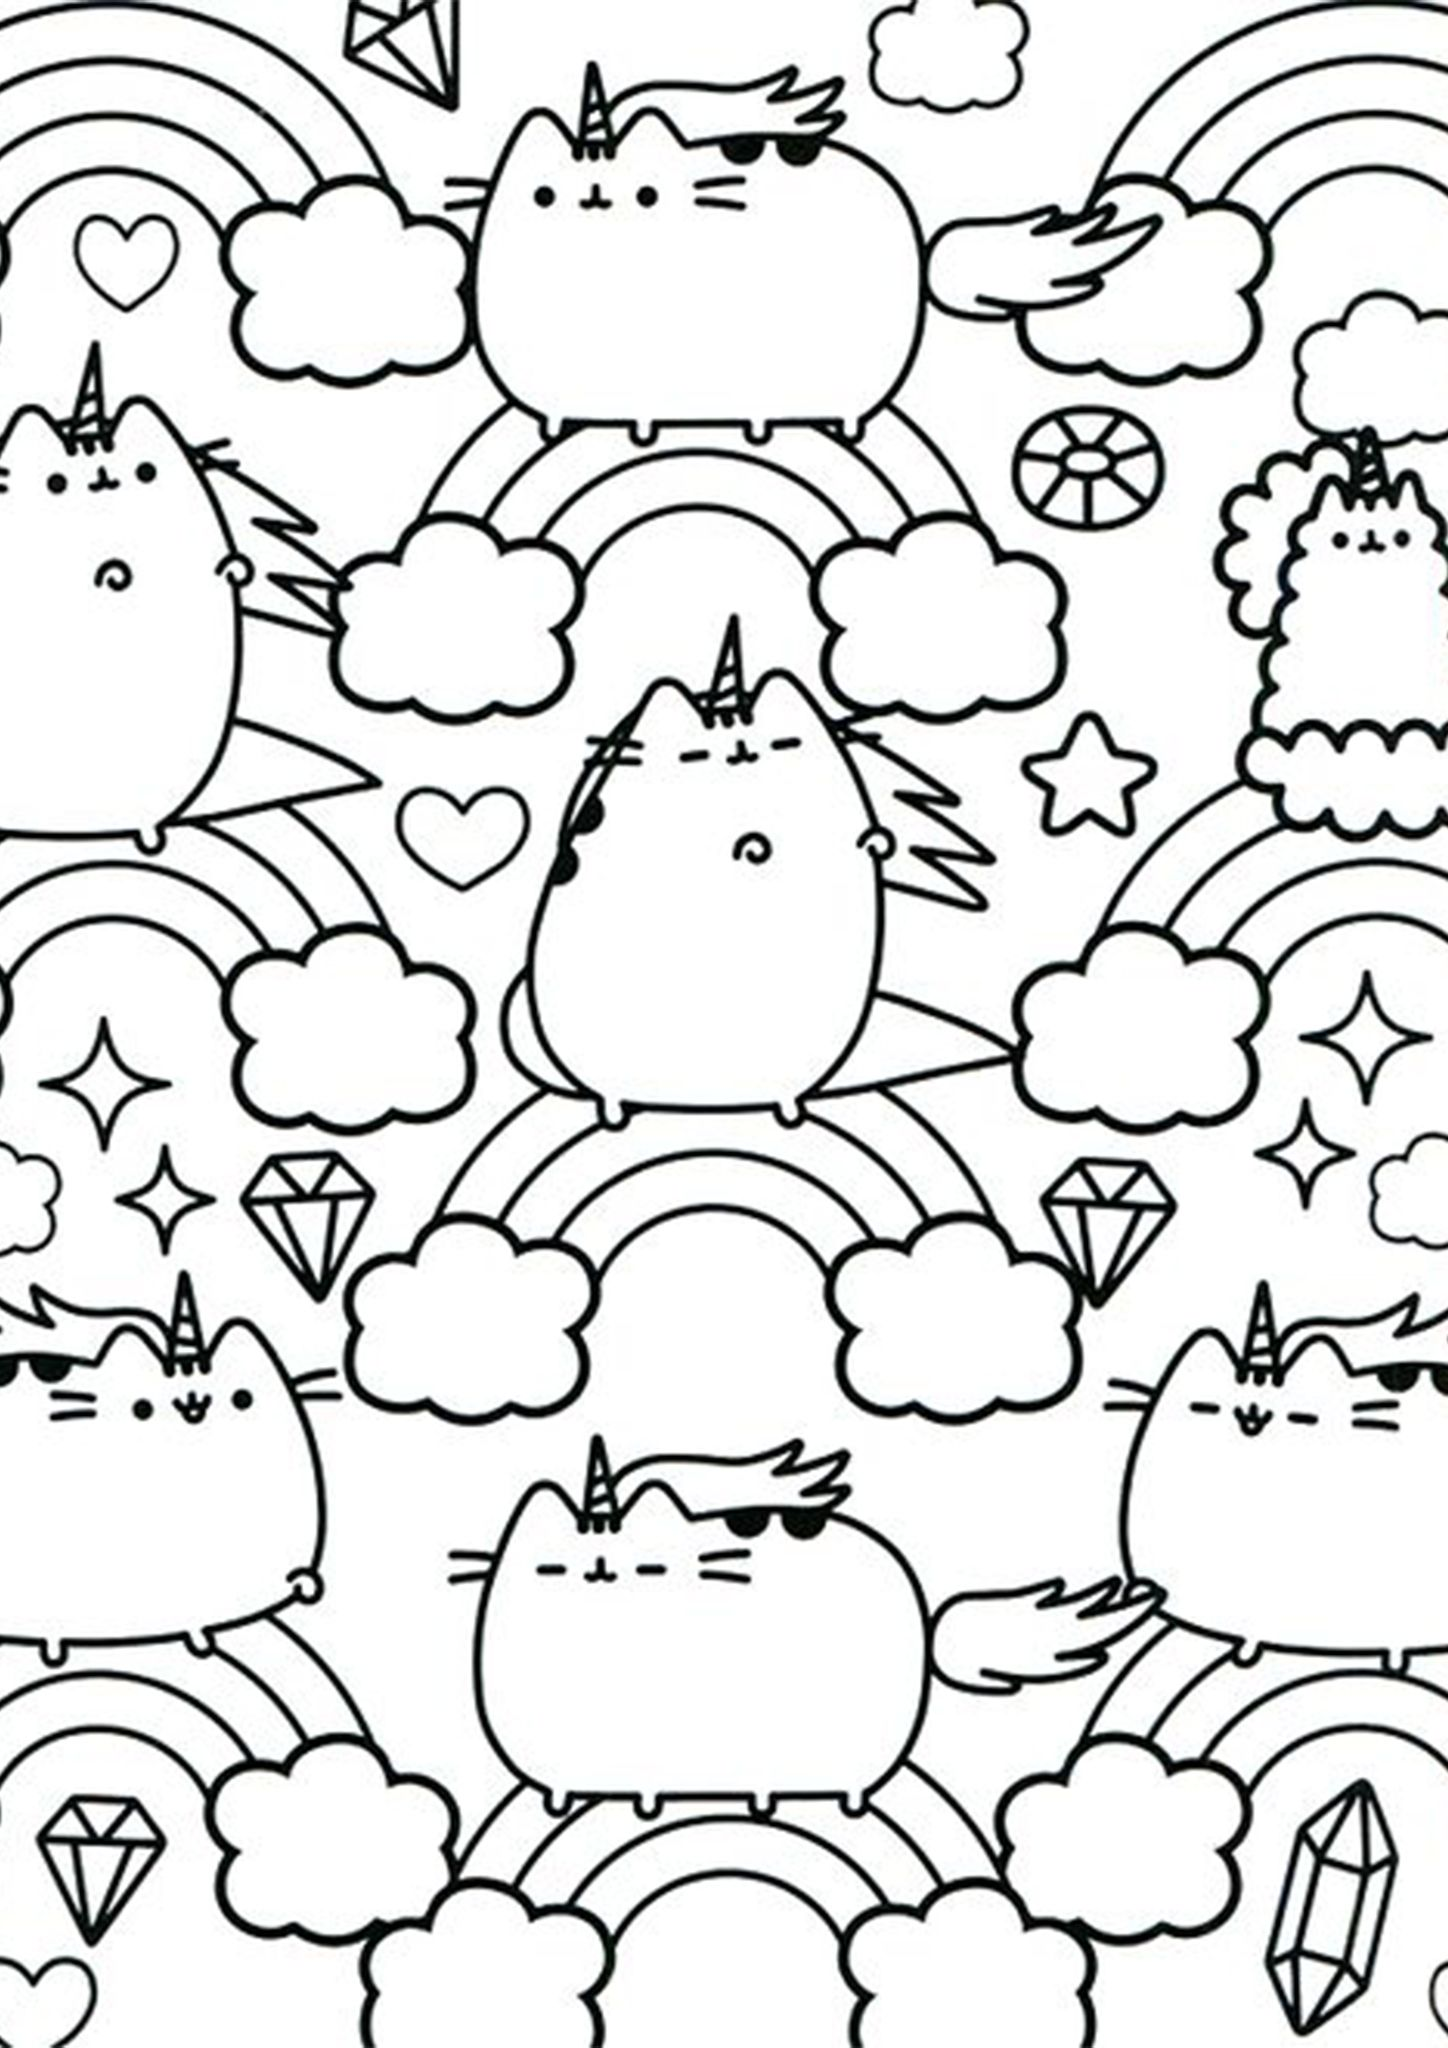 Free & Easy To Print Pusheen Coloring Pages in 2020 ...